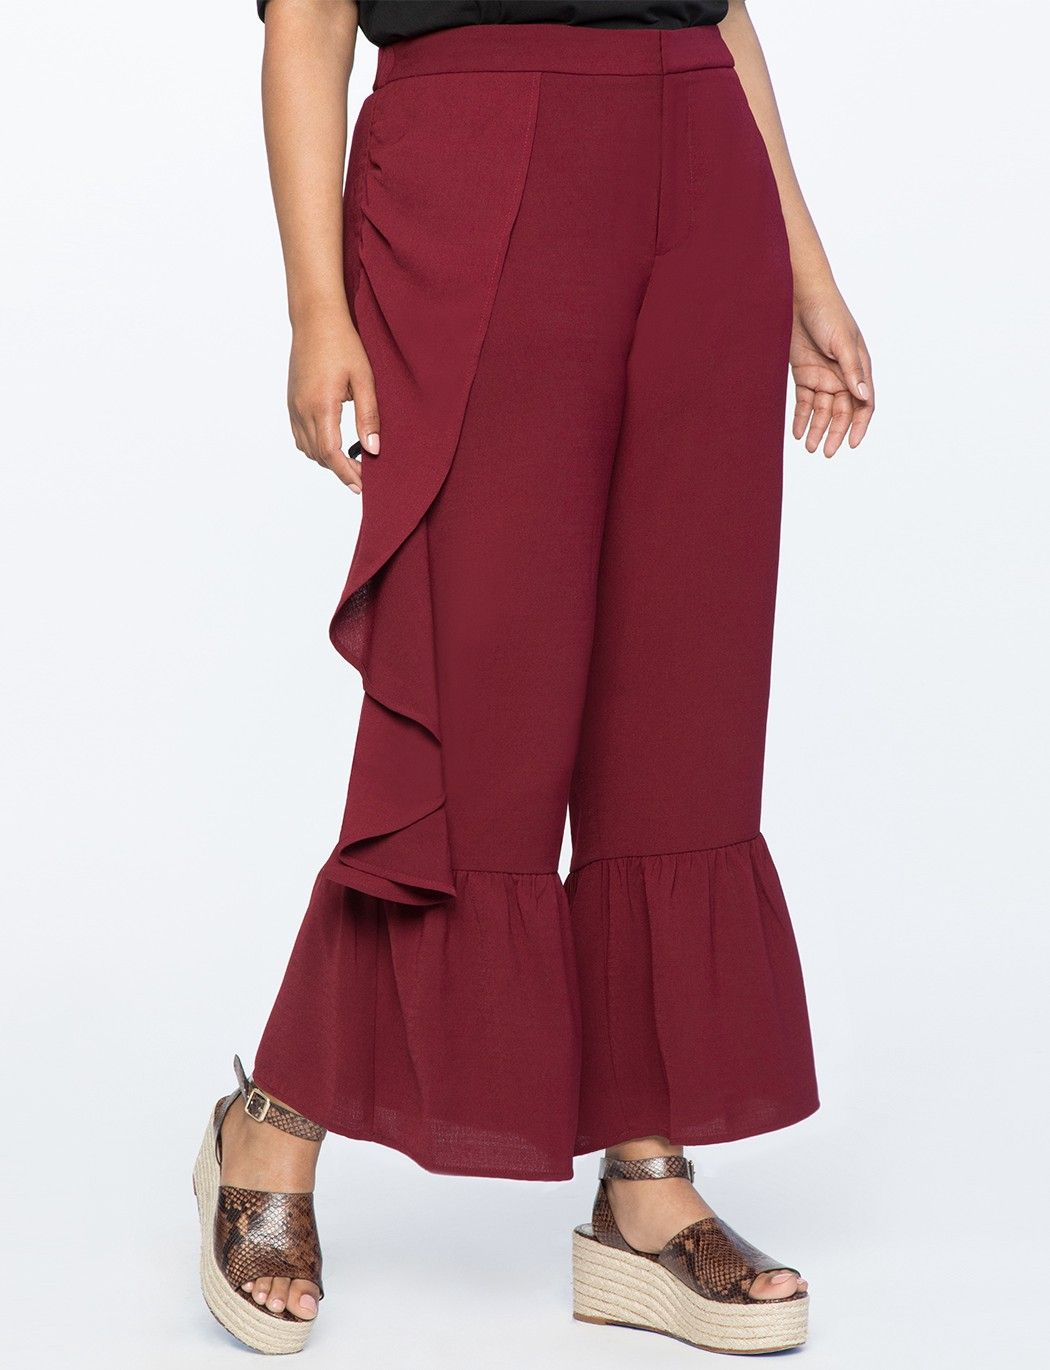 6149f1ad152 Eloquii Asymmetric Ruffle High Waisted Trouser - 14